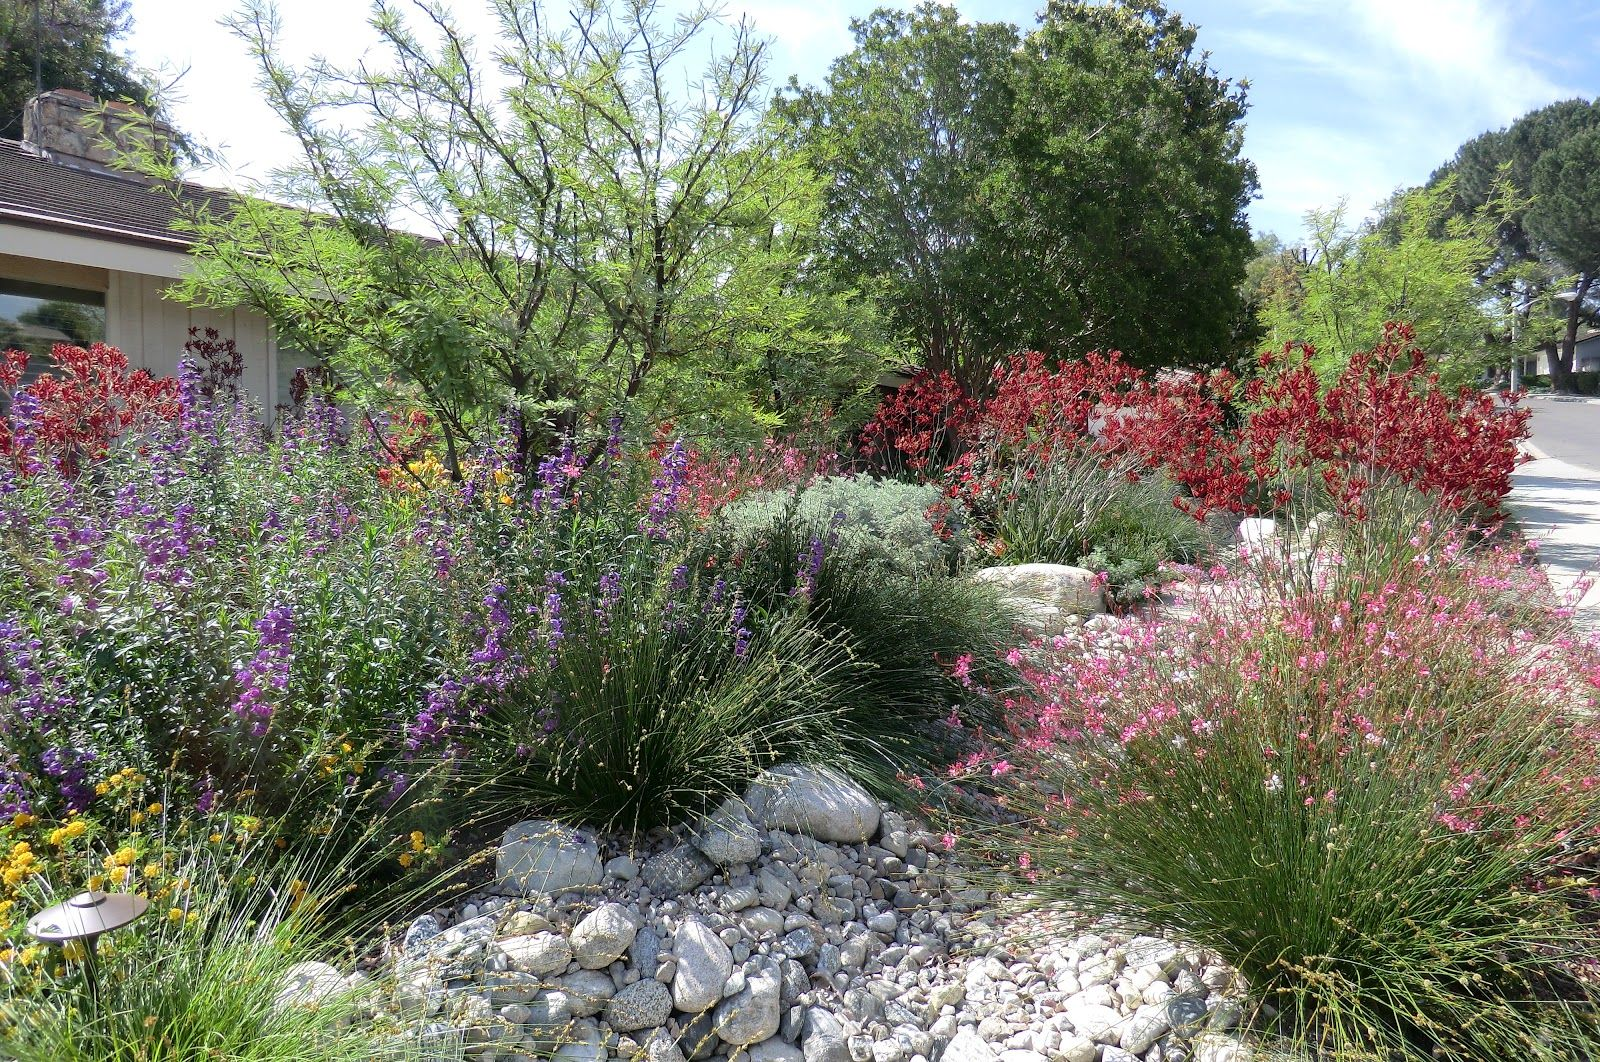 California native plant gardening and landscaping have tremendous